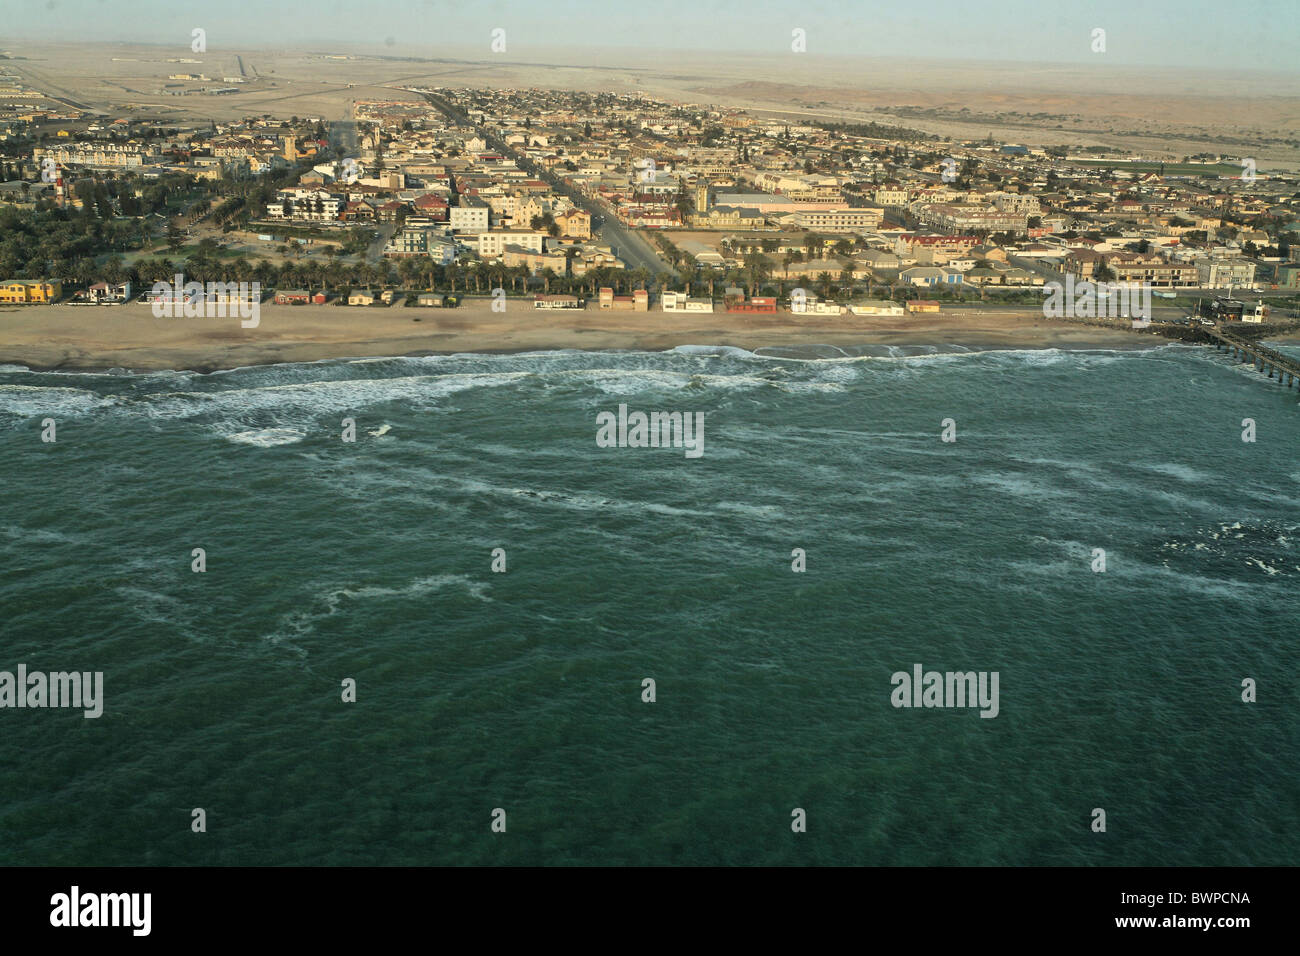 Namibia Africa Swakopmund Summer 2007 Africa aerial view landscape coast shore sea town city - Stock Image